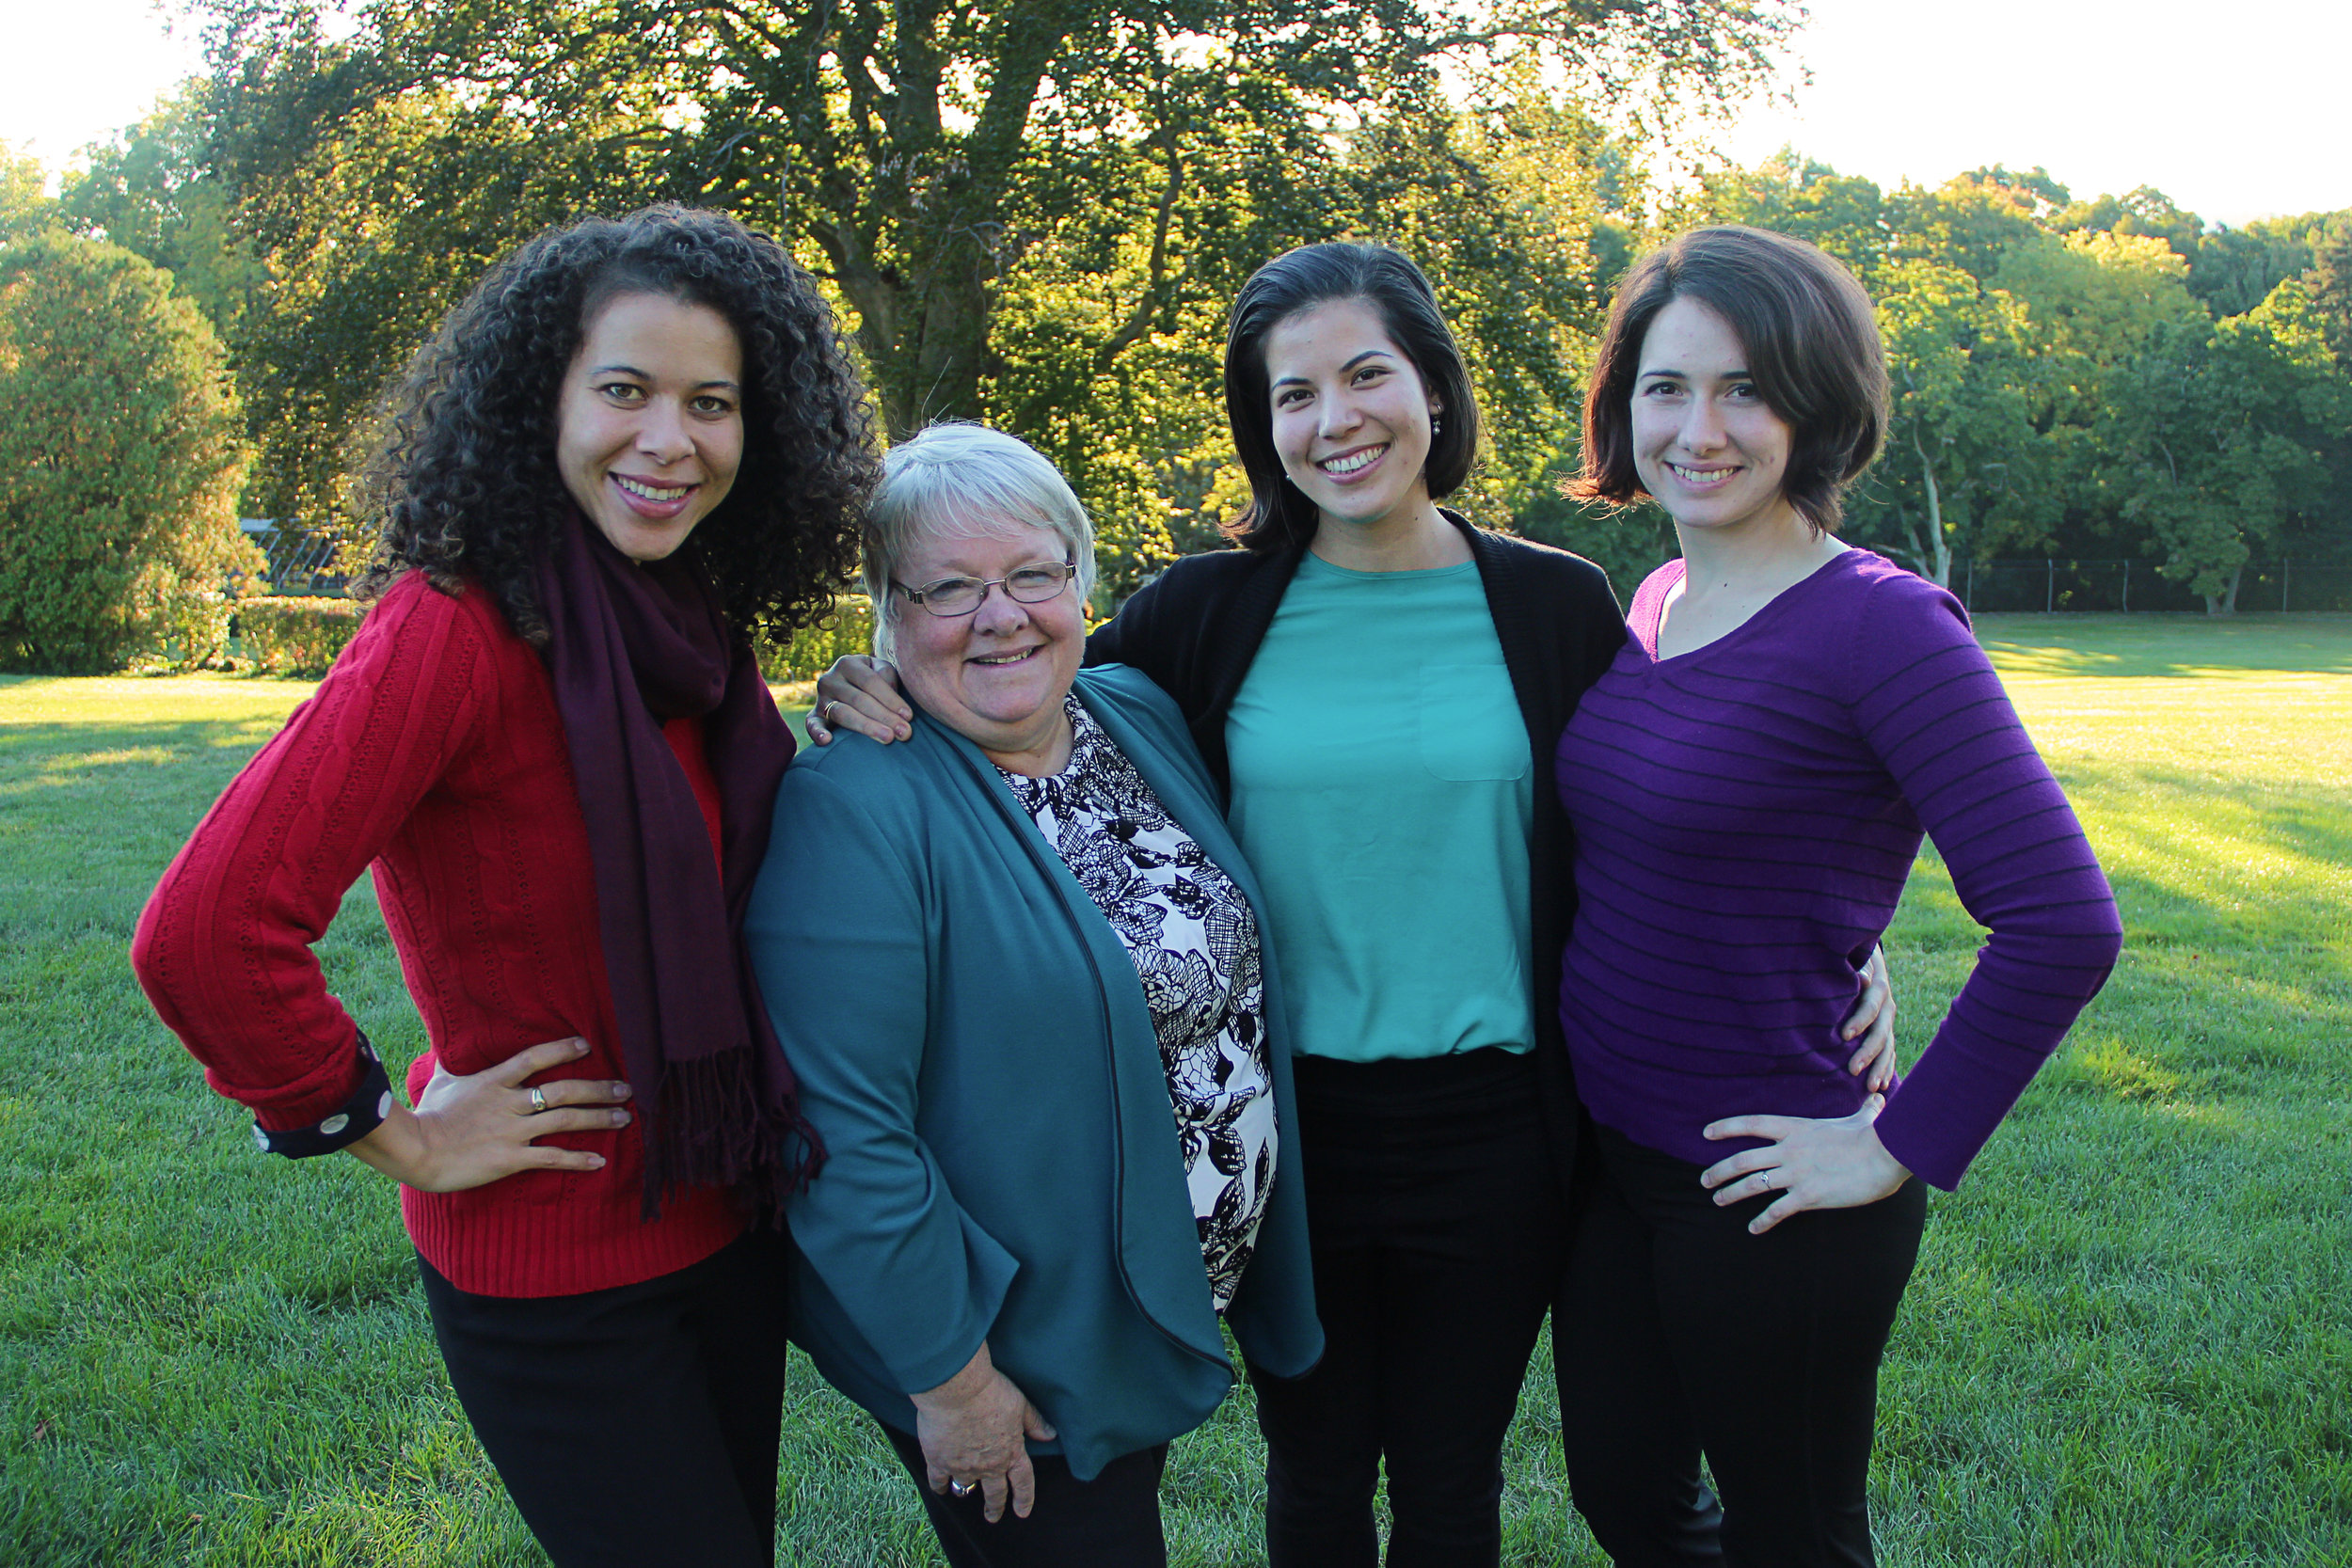 Marjorie strikes a pose with some of the (powerful) ladies of CARP's board and staff.